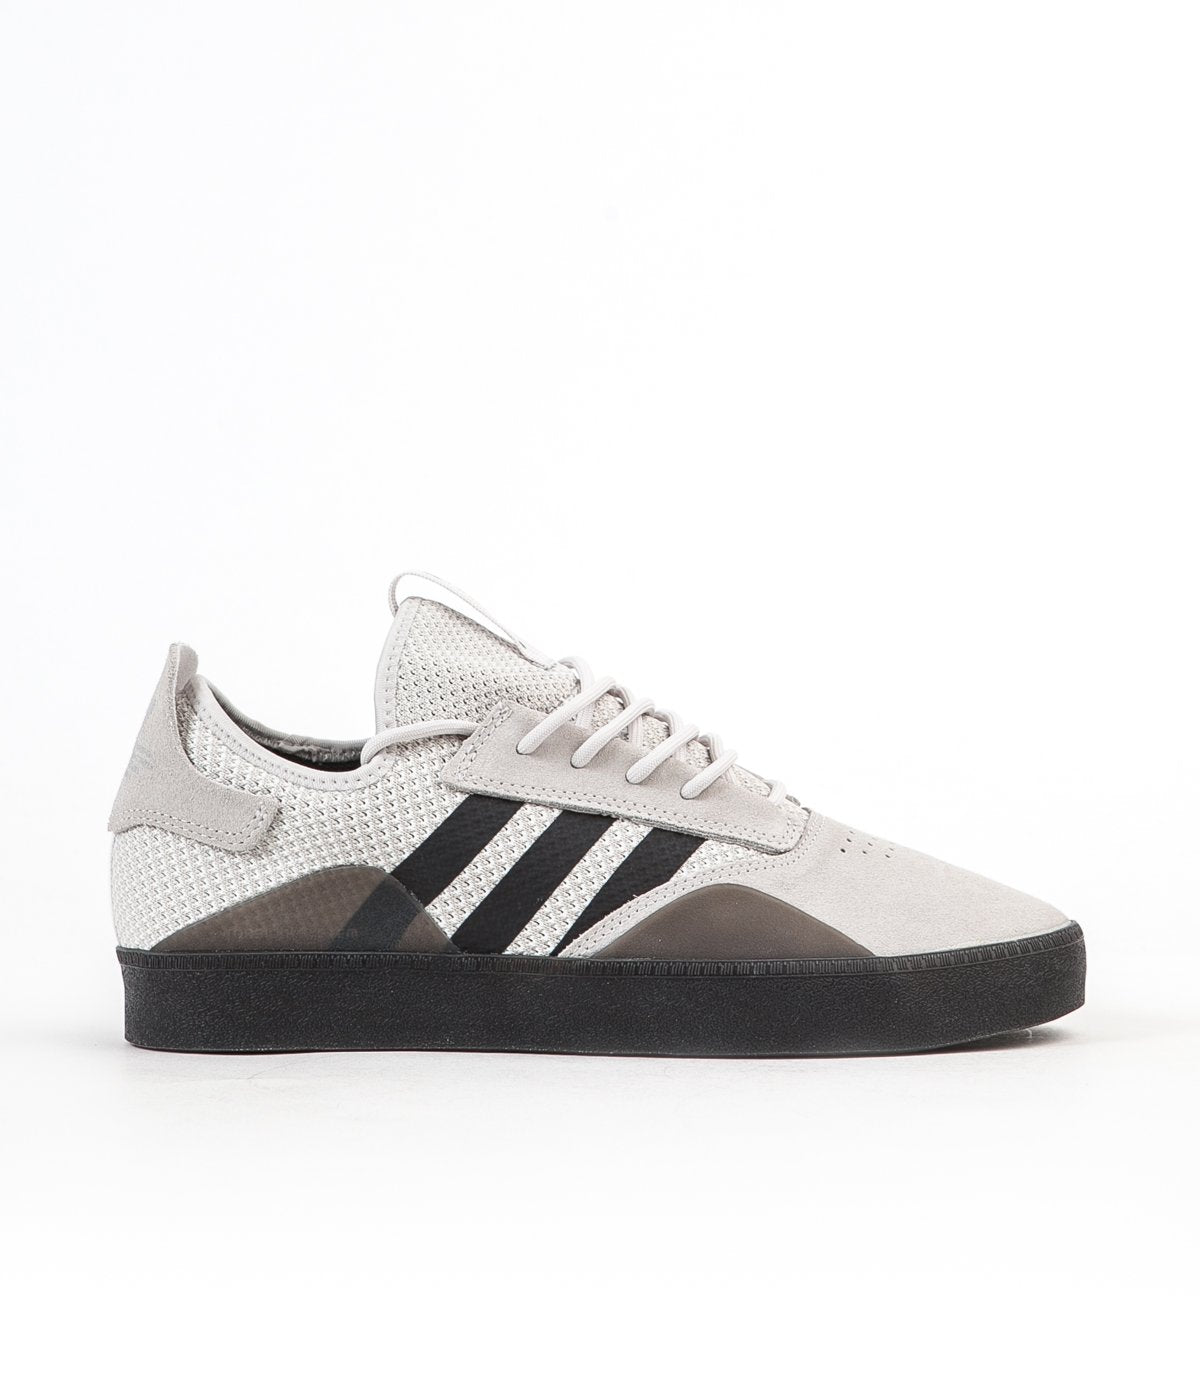 Adidas 3ST.001 Shoes Grey One Core Black White